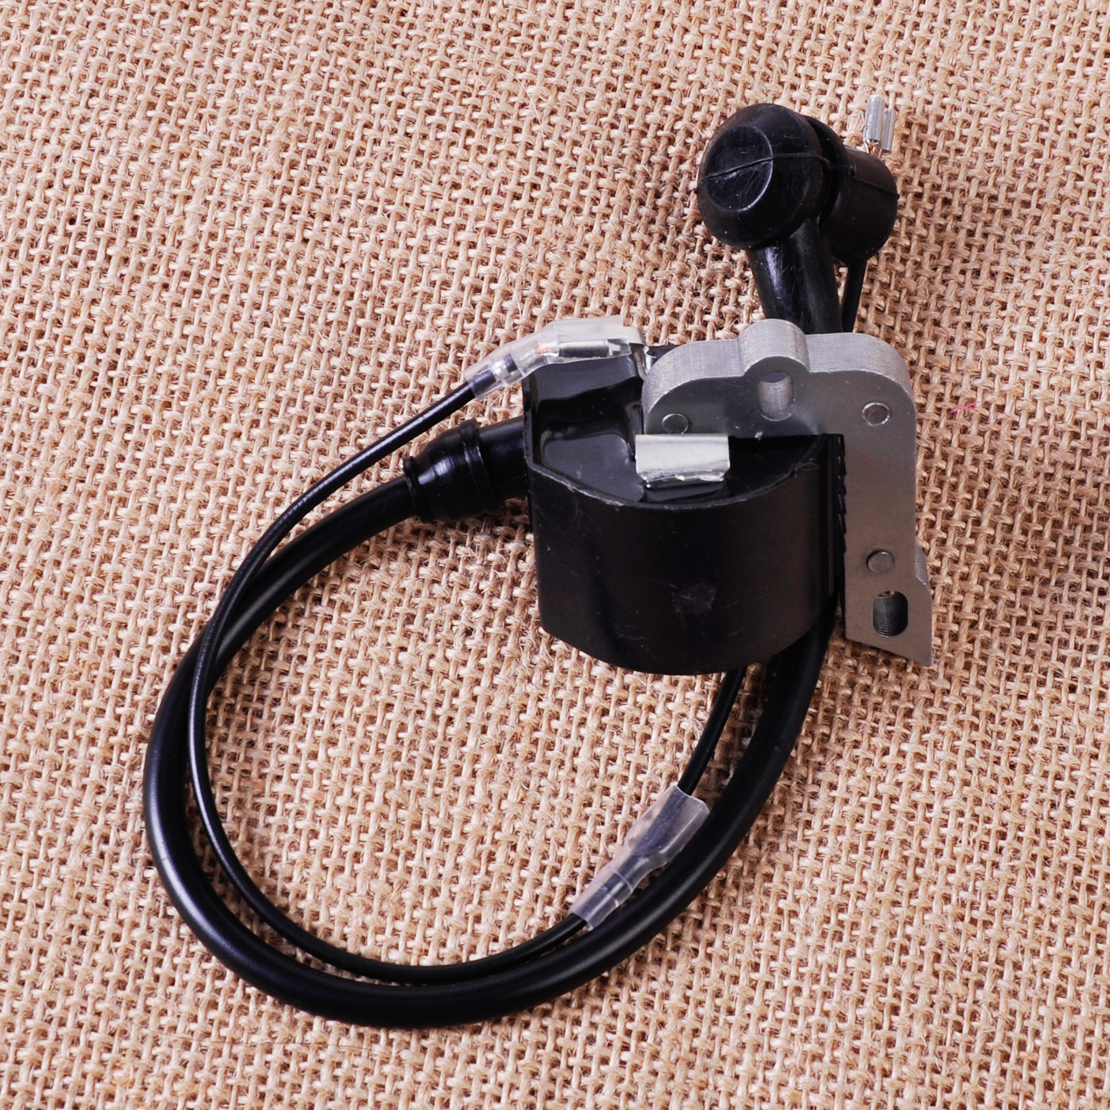 LETAOSK New Ignition Module Coil For Husqvarn a 50 51 55 61 254 257 261 262 266 268 272 ChainsawLETAOSK New Ignition Module Coil For Husqvarn a 50 51 55 61 254 257 261 262 266 268 272 Chainsaw